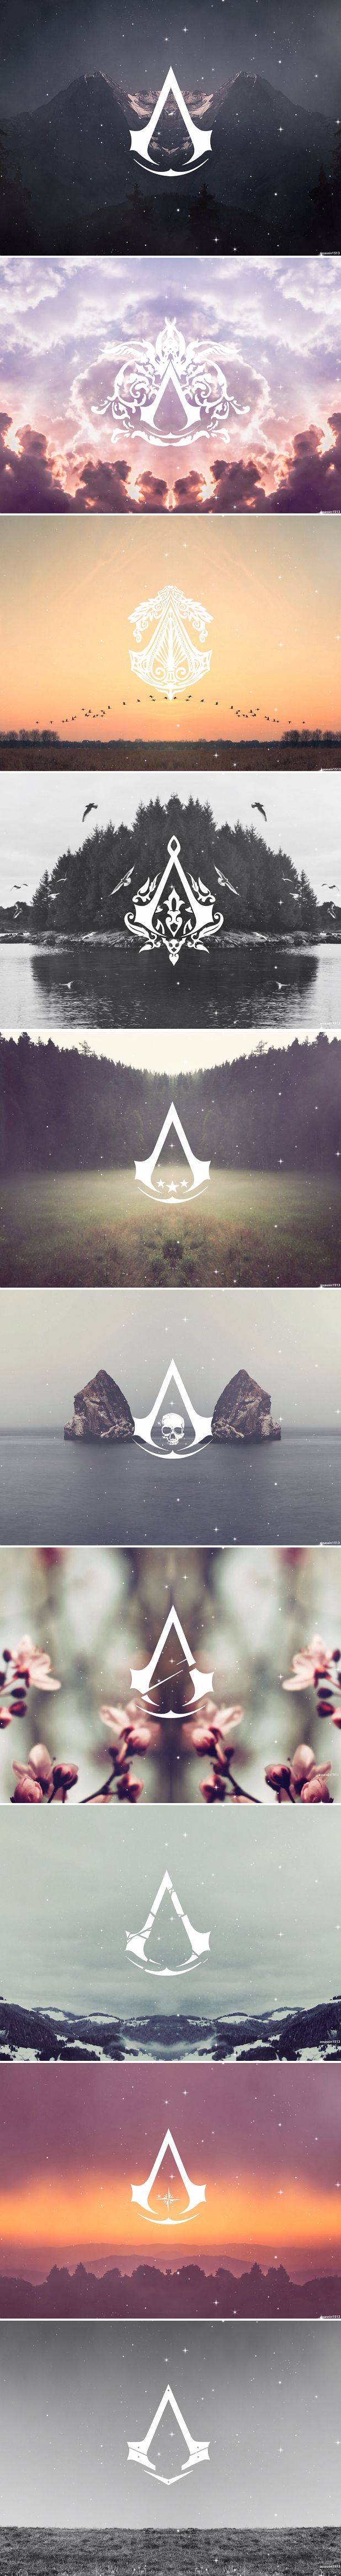 Assassin's Creed Logos                                                                                                                                                     Mais